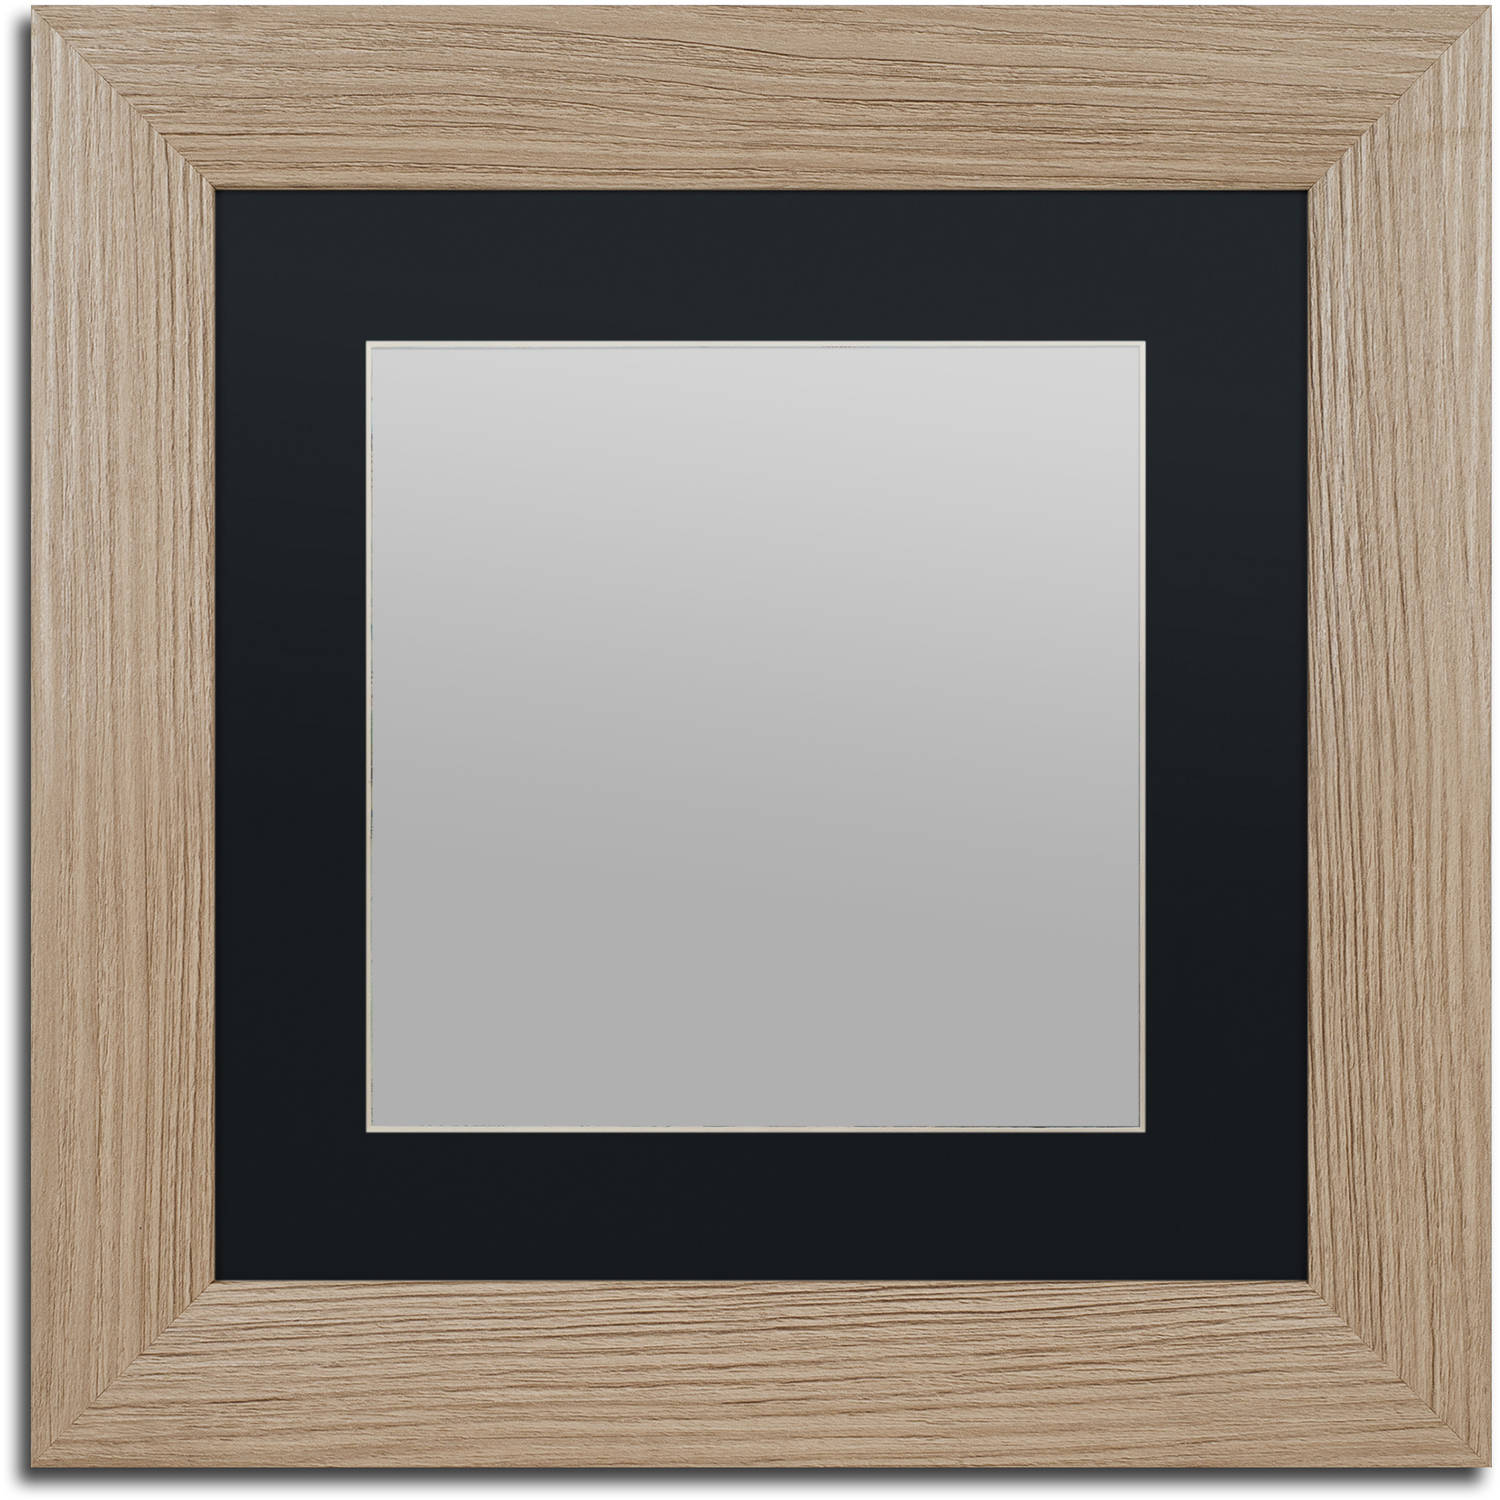 Trademark Fine Art Heavy-Duty 11x11 Birch Wood Picture Frame with 7x7 Black Mat